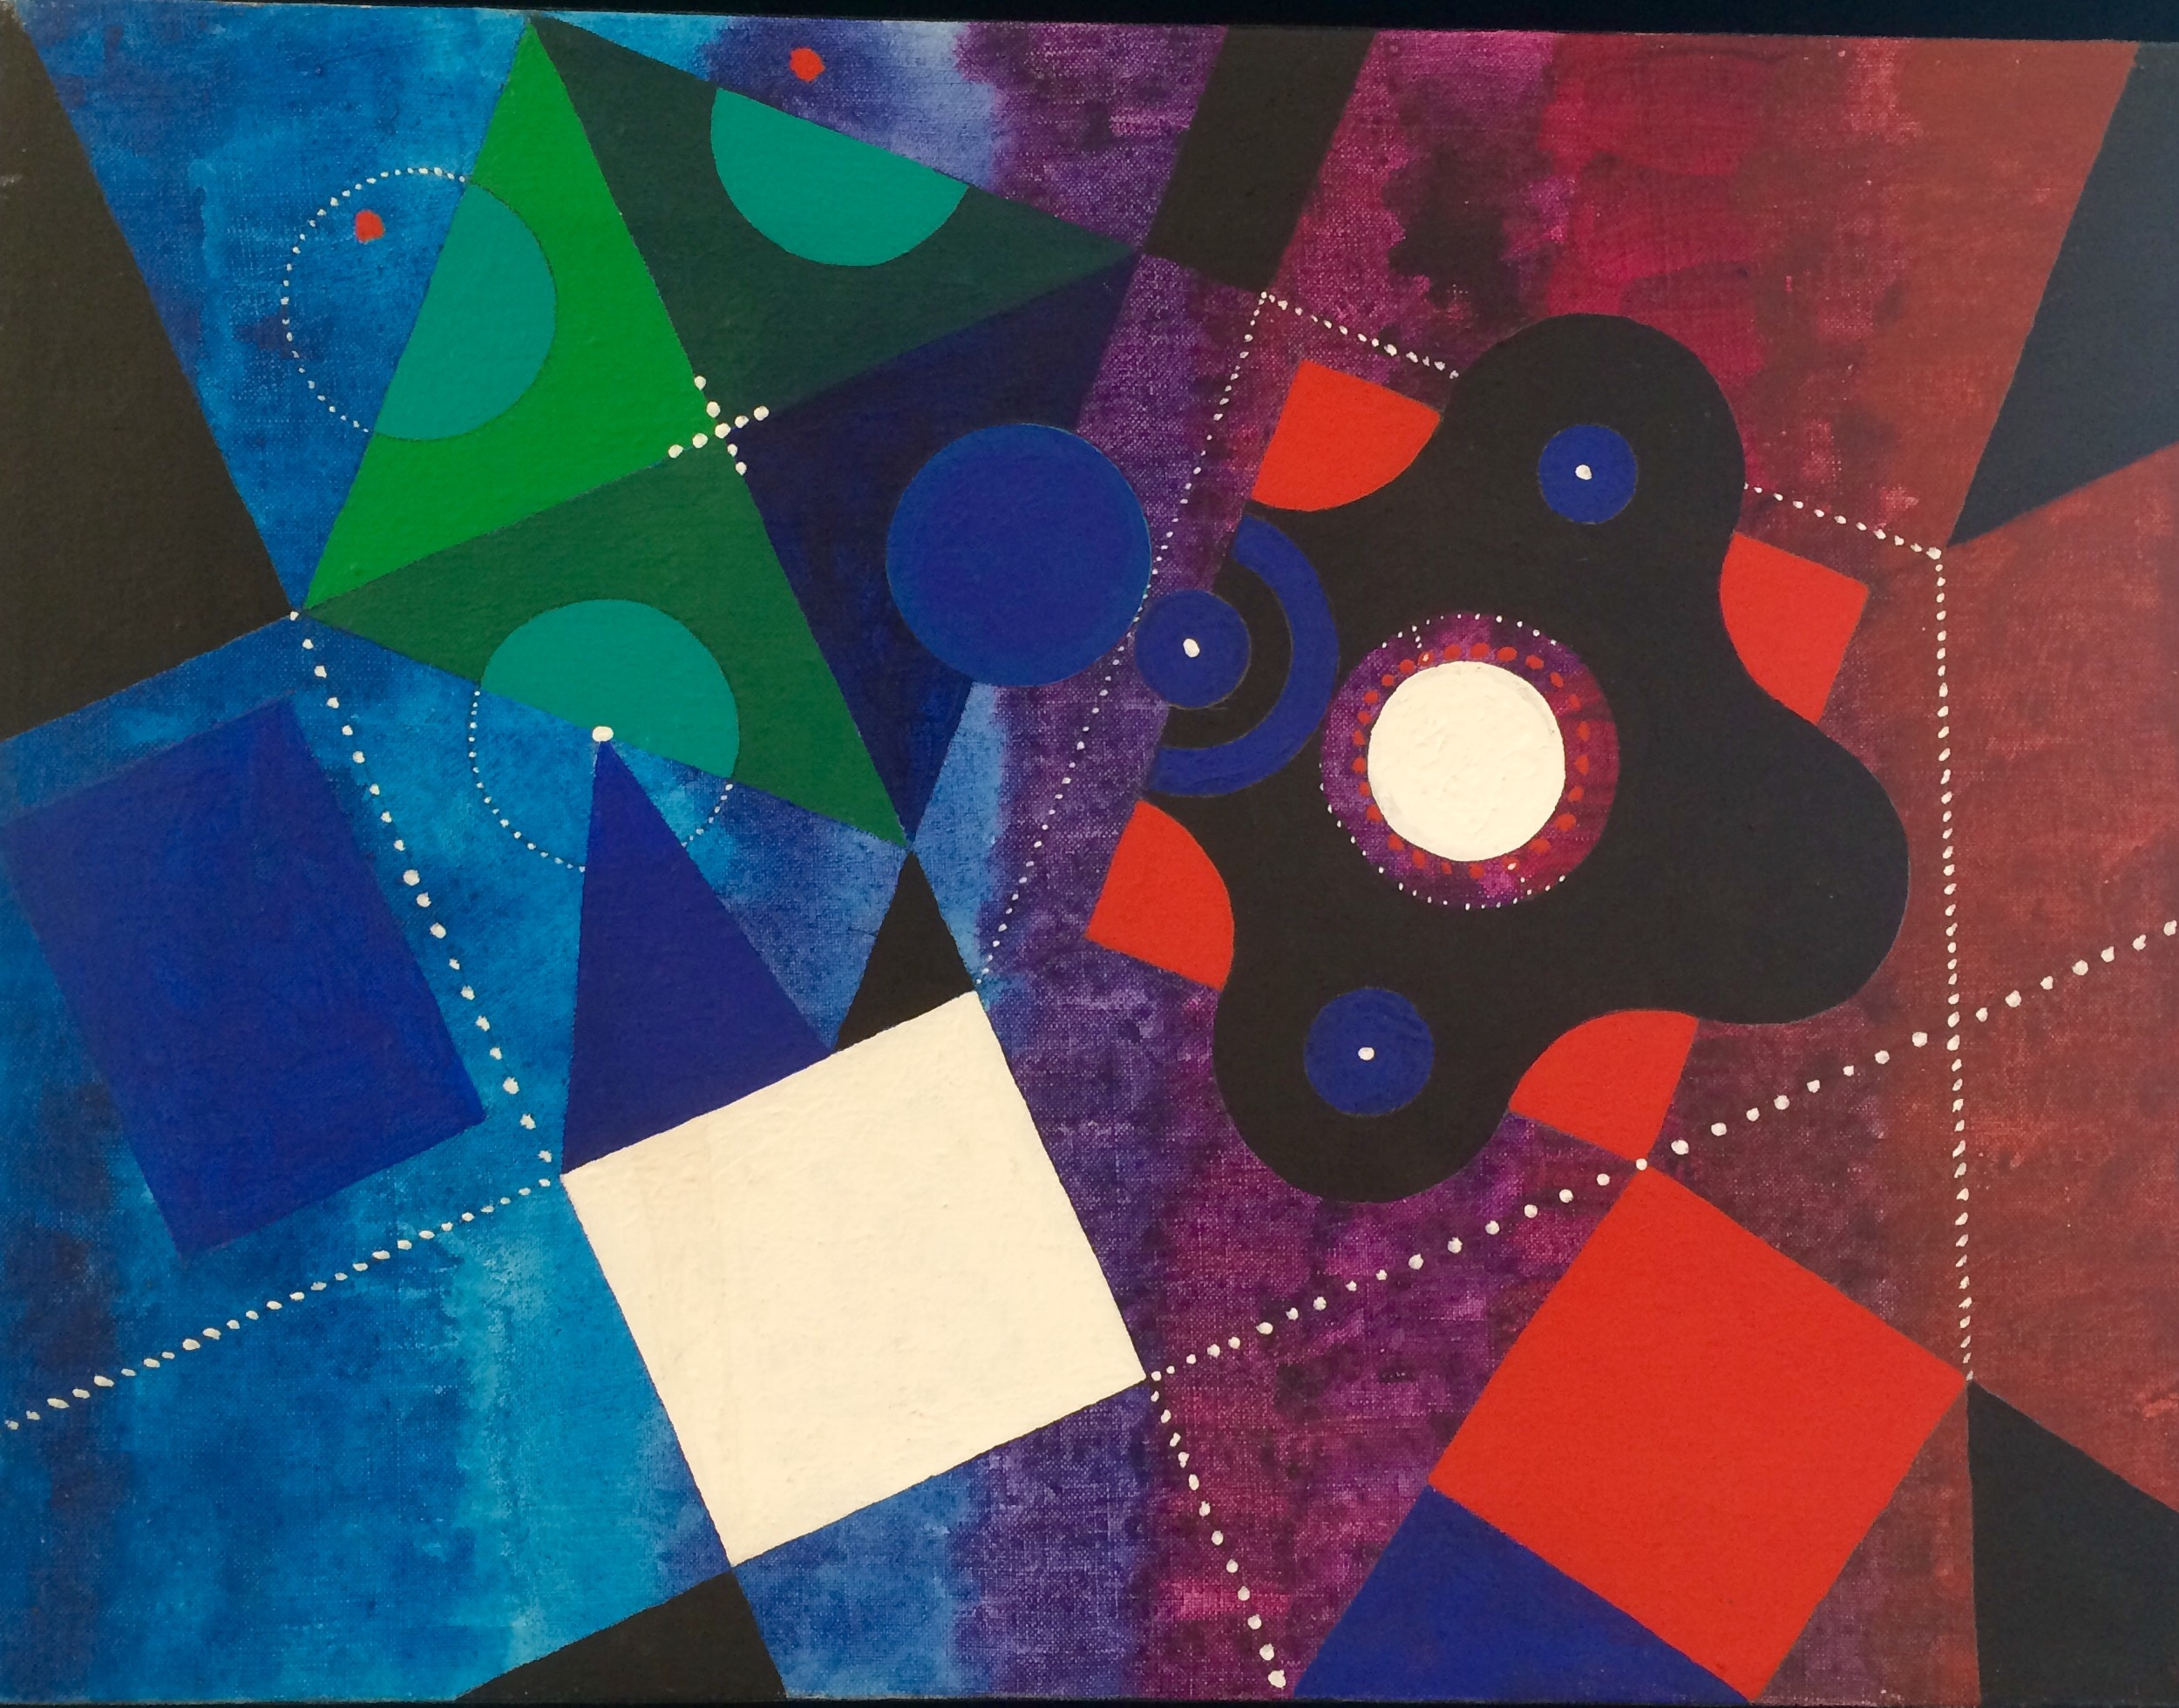 Untitled Geometric II by James McCray (1960s)